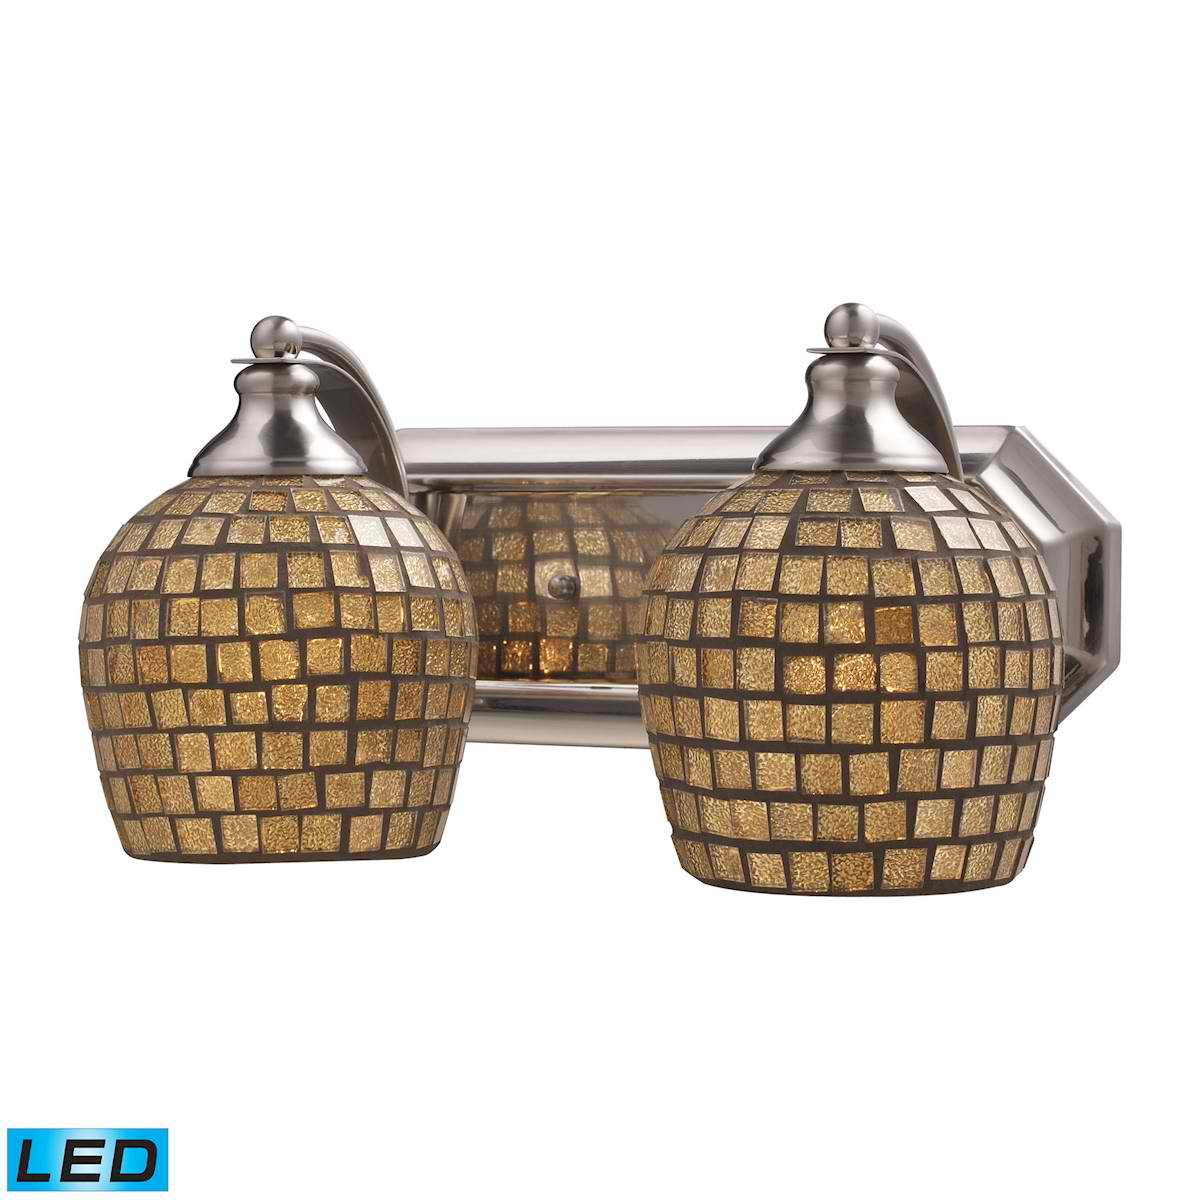 2 Light Vanity in Satin Nickel and Gold Mosaic Glass - LED, 800 Lumens (1600 Lumens Total) with Full Scale